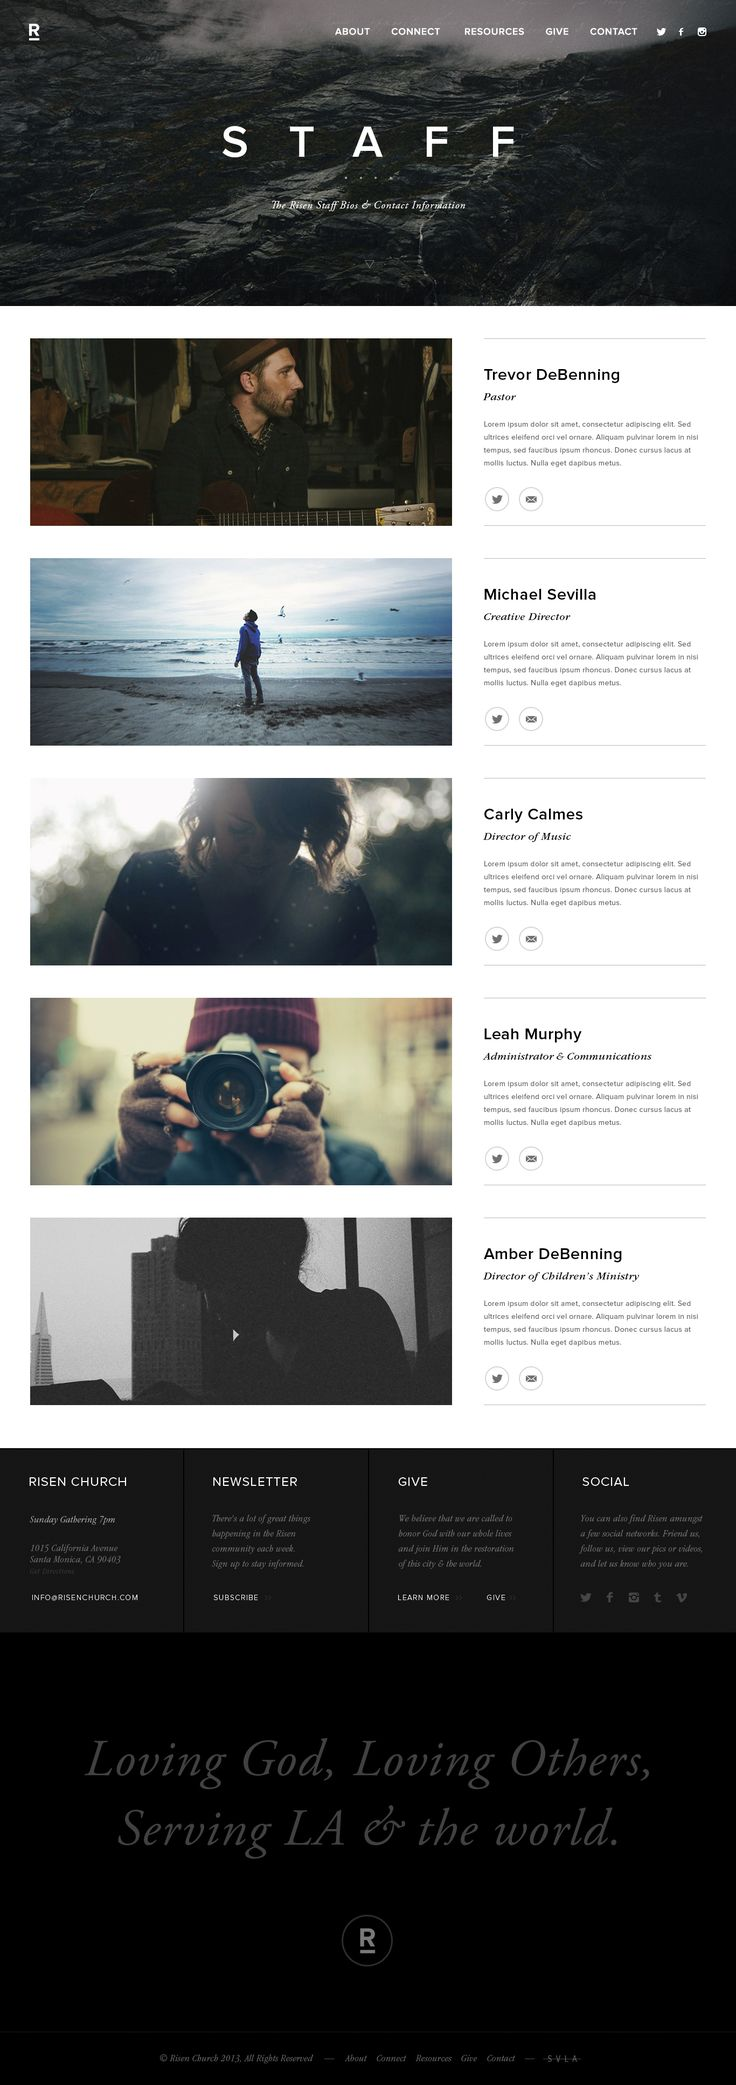 This layout is everything #sexy #web #design